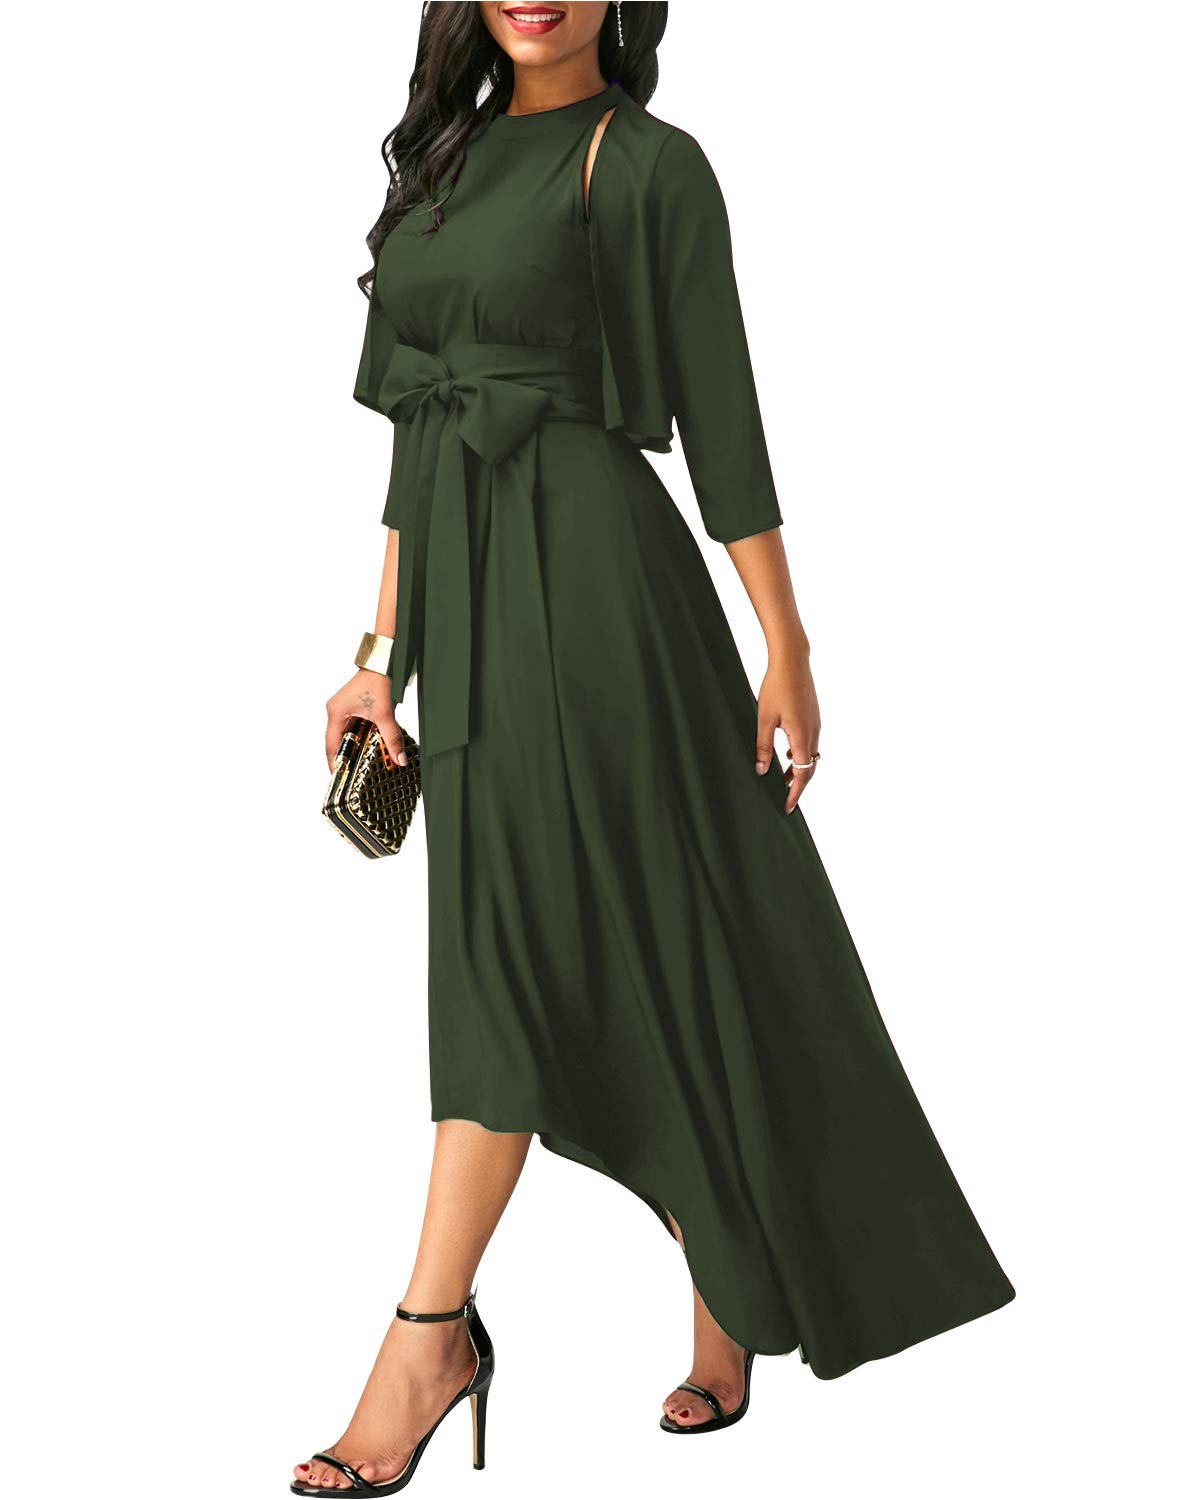 AUTCY Jacket+Belt+Dress Formal Asymmetrical Long Dresses for Women (2XL, Army Green)